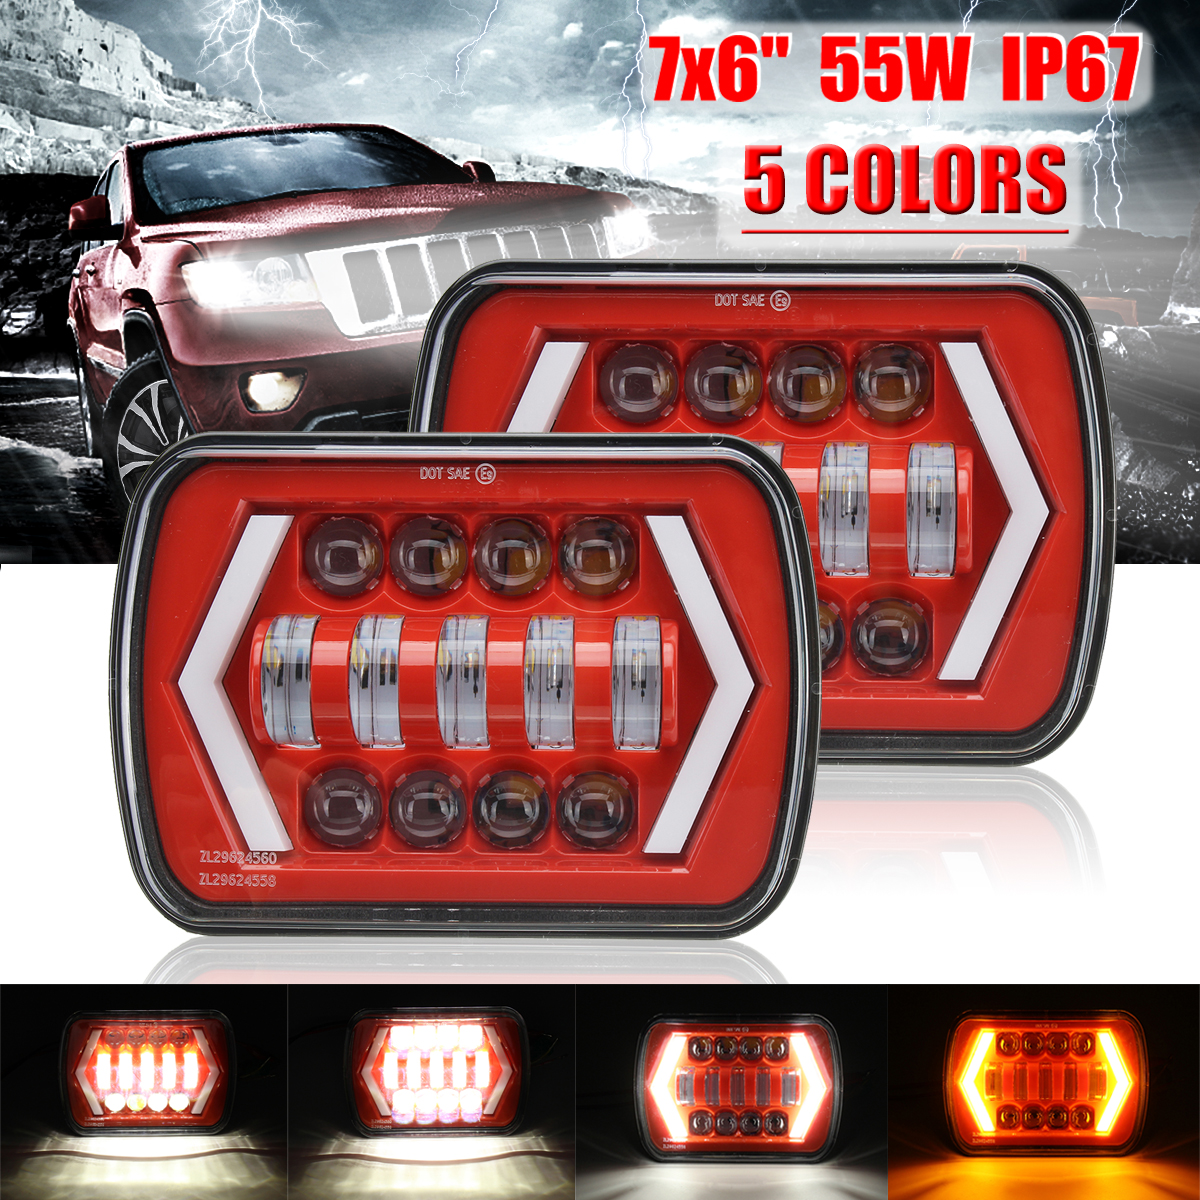 2 pcs Rouge DOT 55 w 7x6 ''5X7 LED Projecteur Phare Salut-Lo faisceau Halo Pour Jeep Cherokee